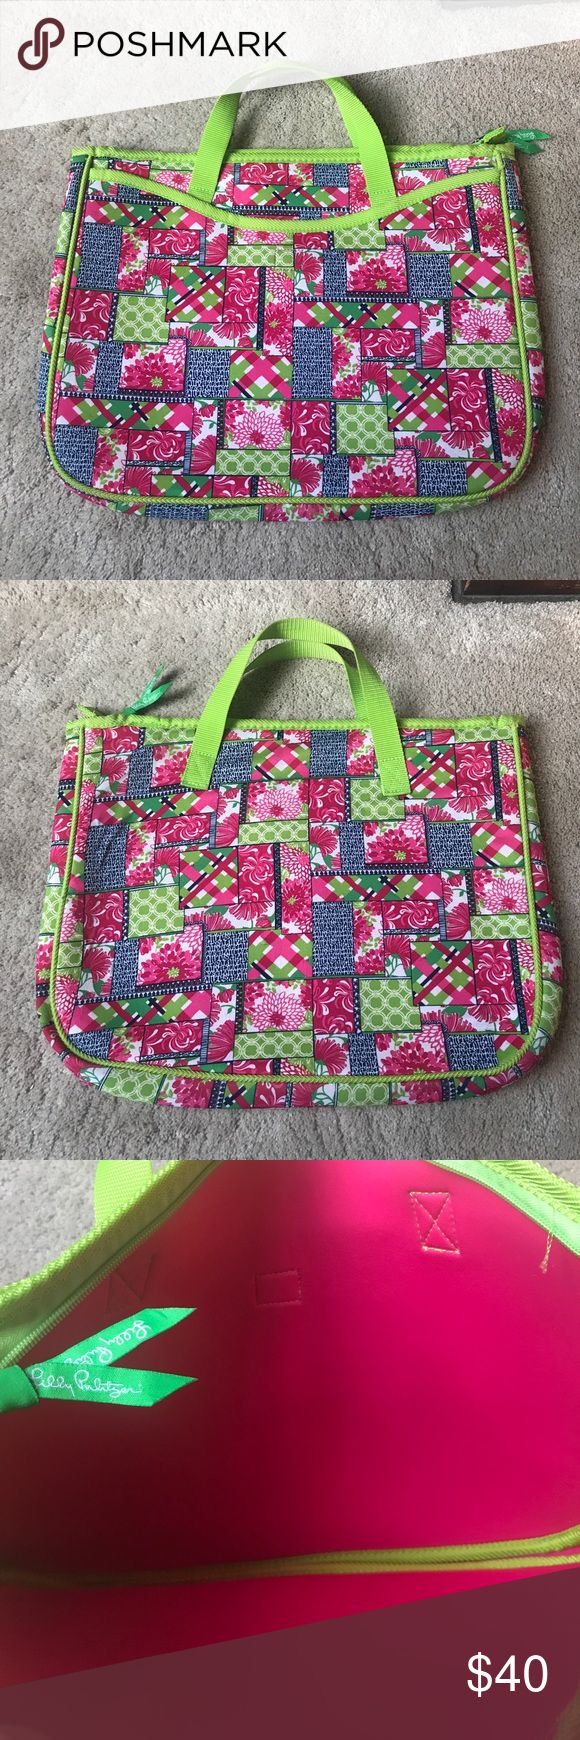 Lilly Pulitzer laptop case! Multi colored Lilly pulitzer laptop case! Excellent condition! Lilly Pulitzer Bags Laptop Bags